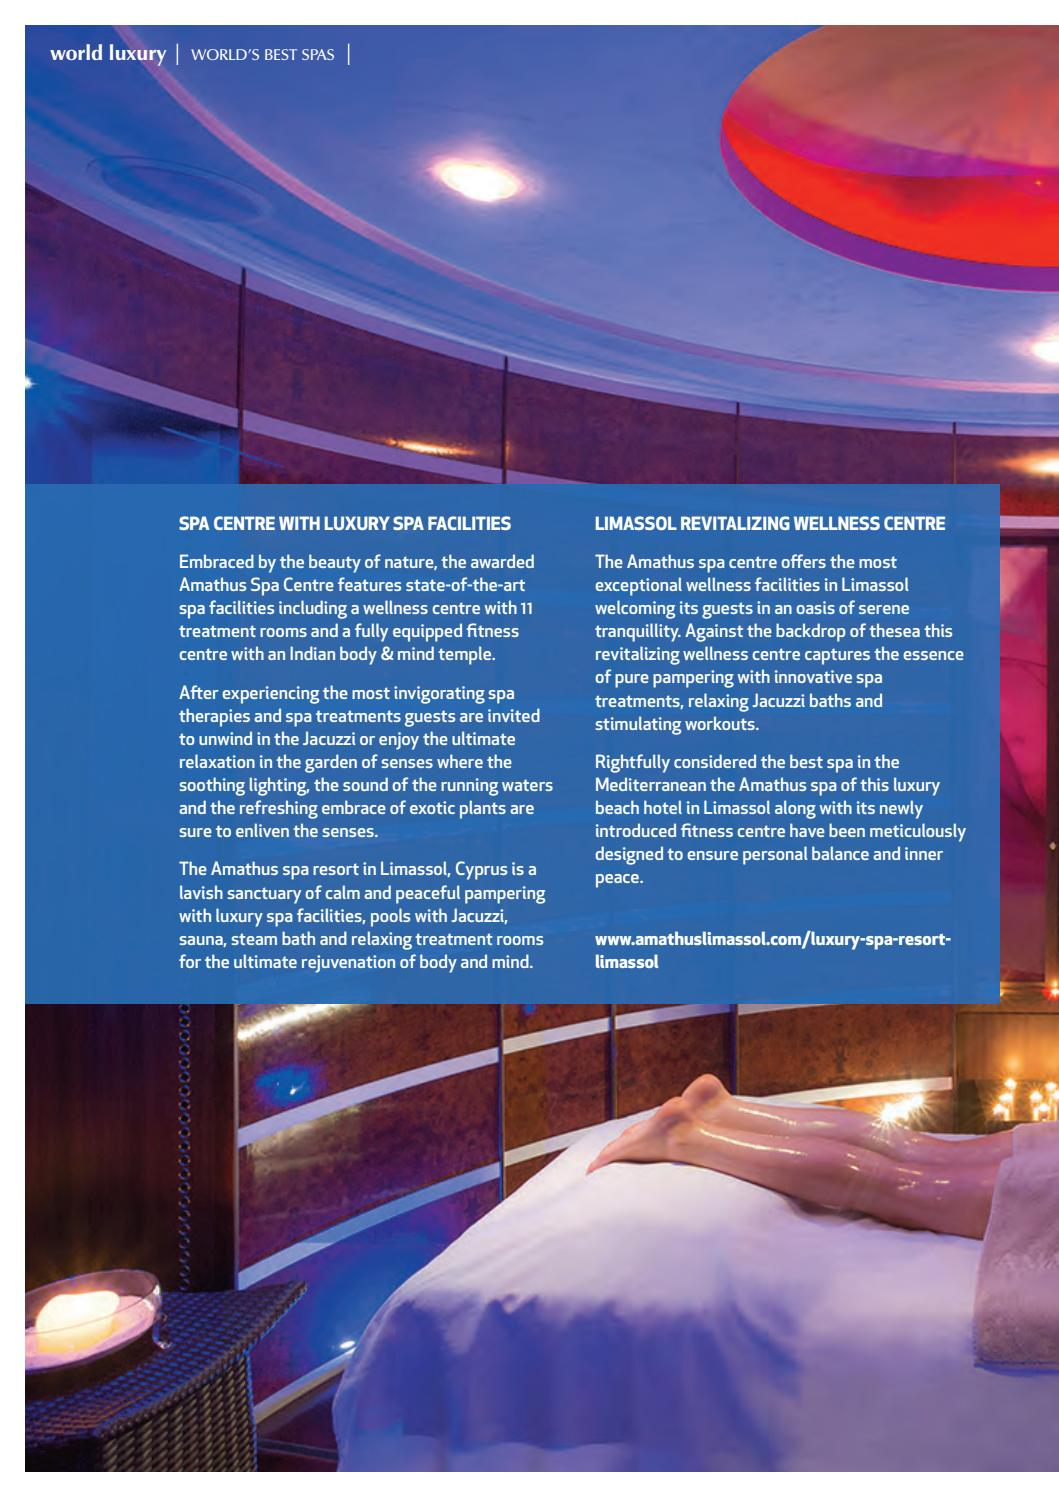 Best In Travel Magazine Issue 47 2018 Discover Luxury Spas By Best In Travel Magazine Issuu